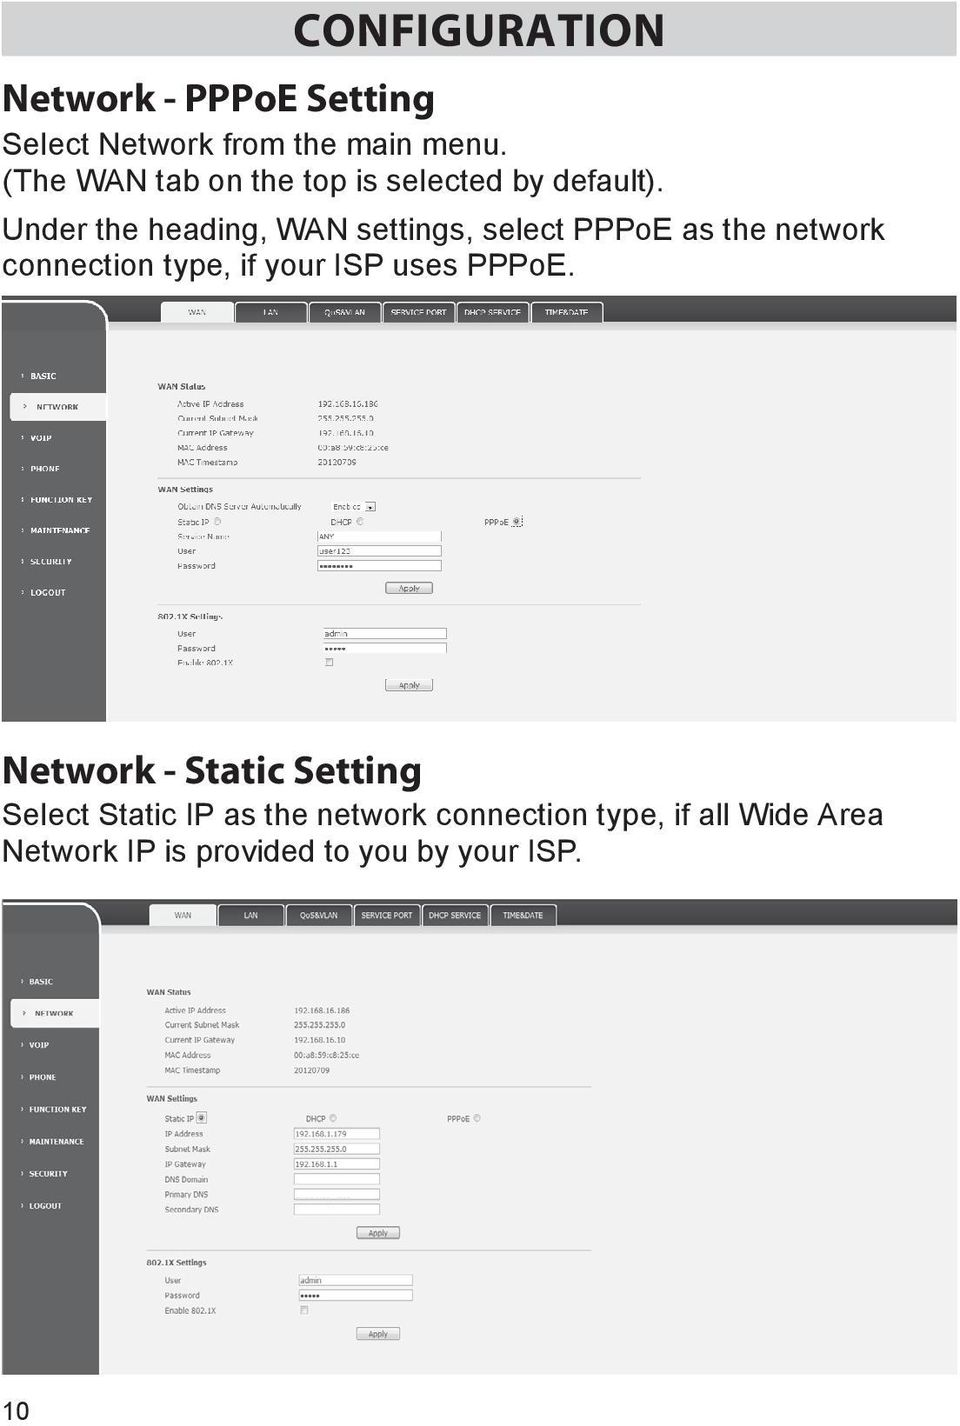 Under the heading, WAN settings, select PPPoE as the network connection type, if your ISP